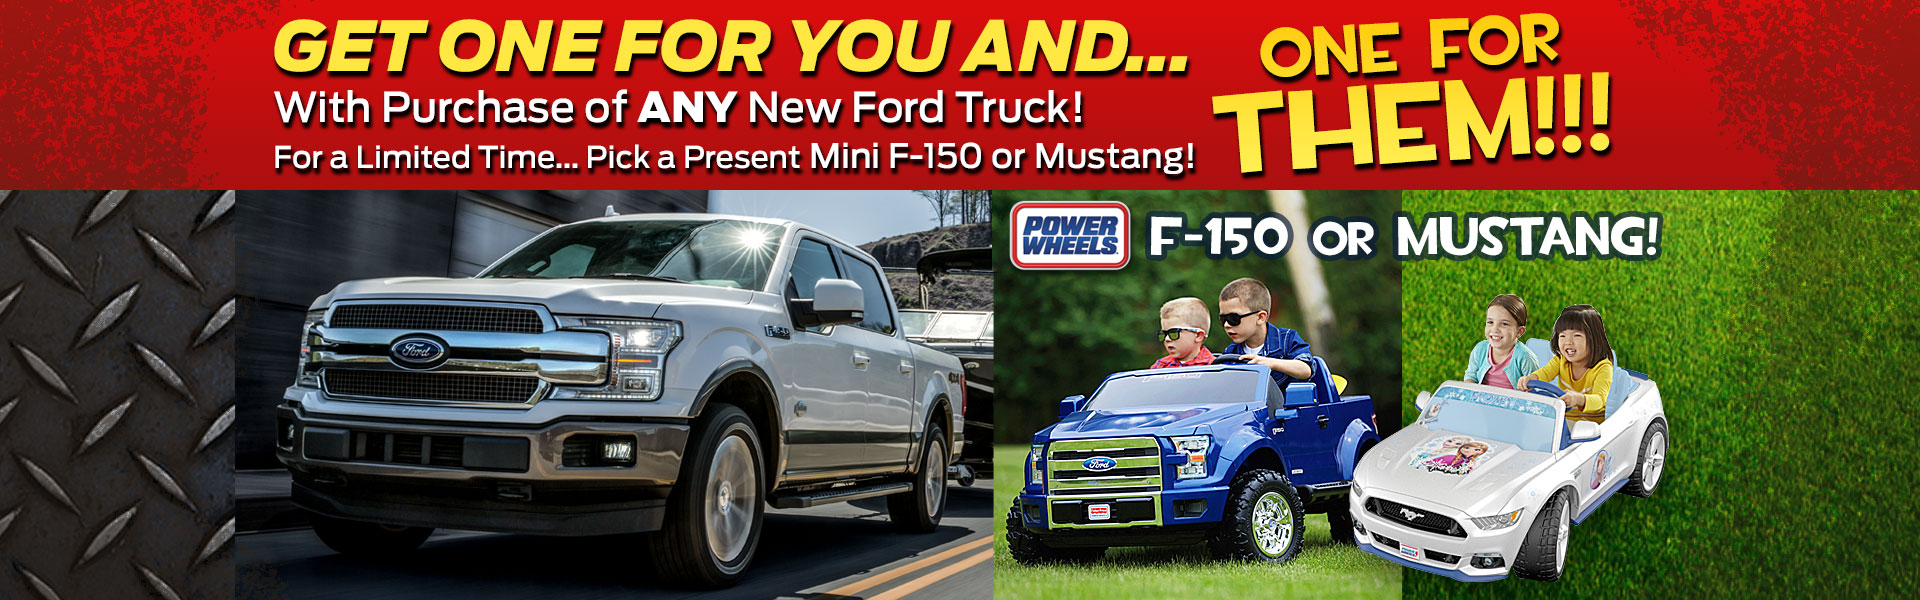 Get a Mini F-150 or Mustang with New Ford Truck Purchase!